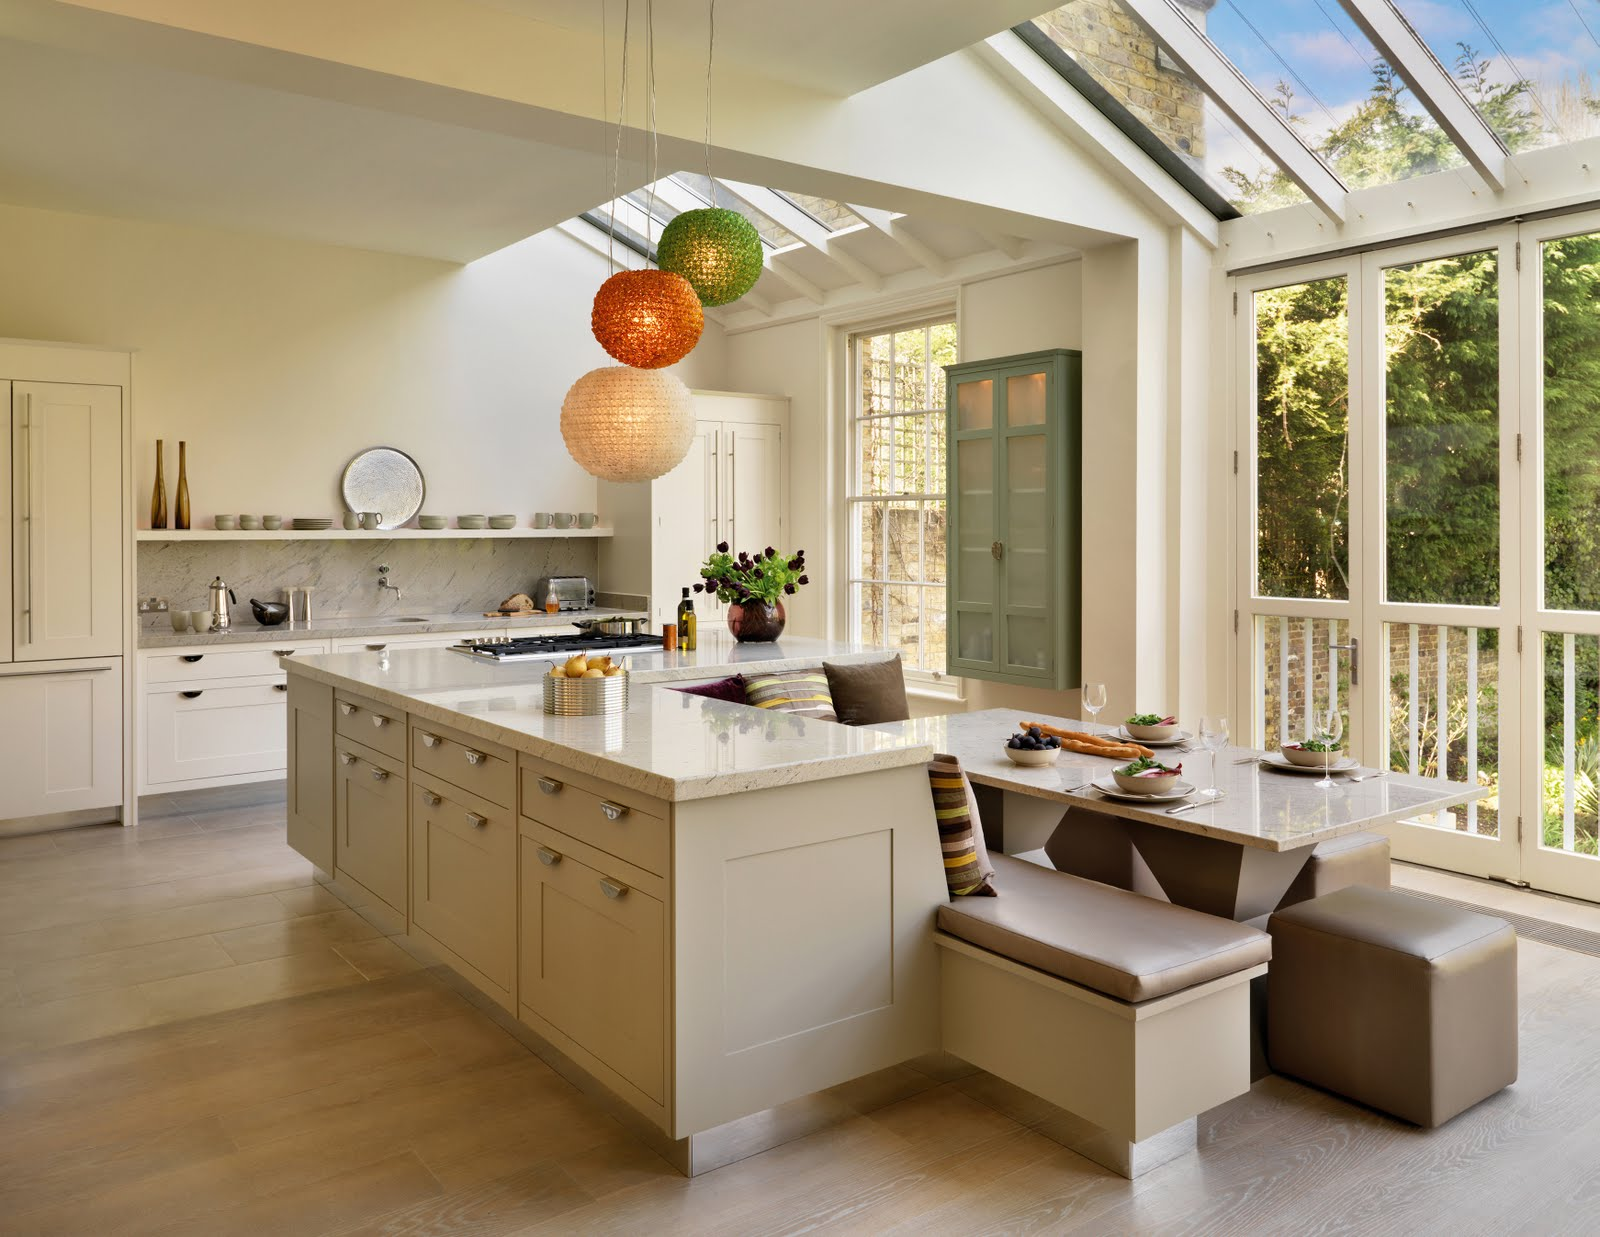 Adorable Design Of The Brown Wooden Floor Added With White Cabinets And Kitchen  Island As The